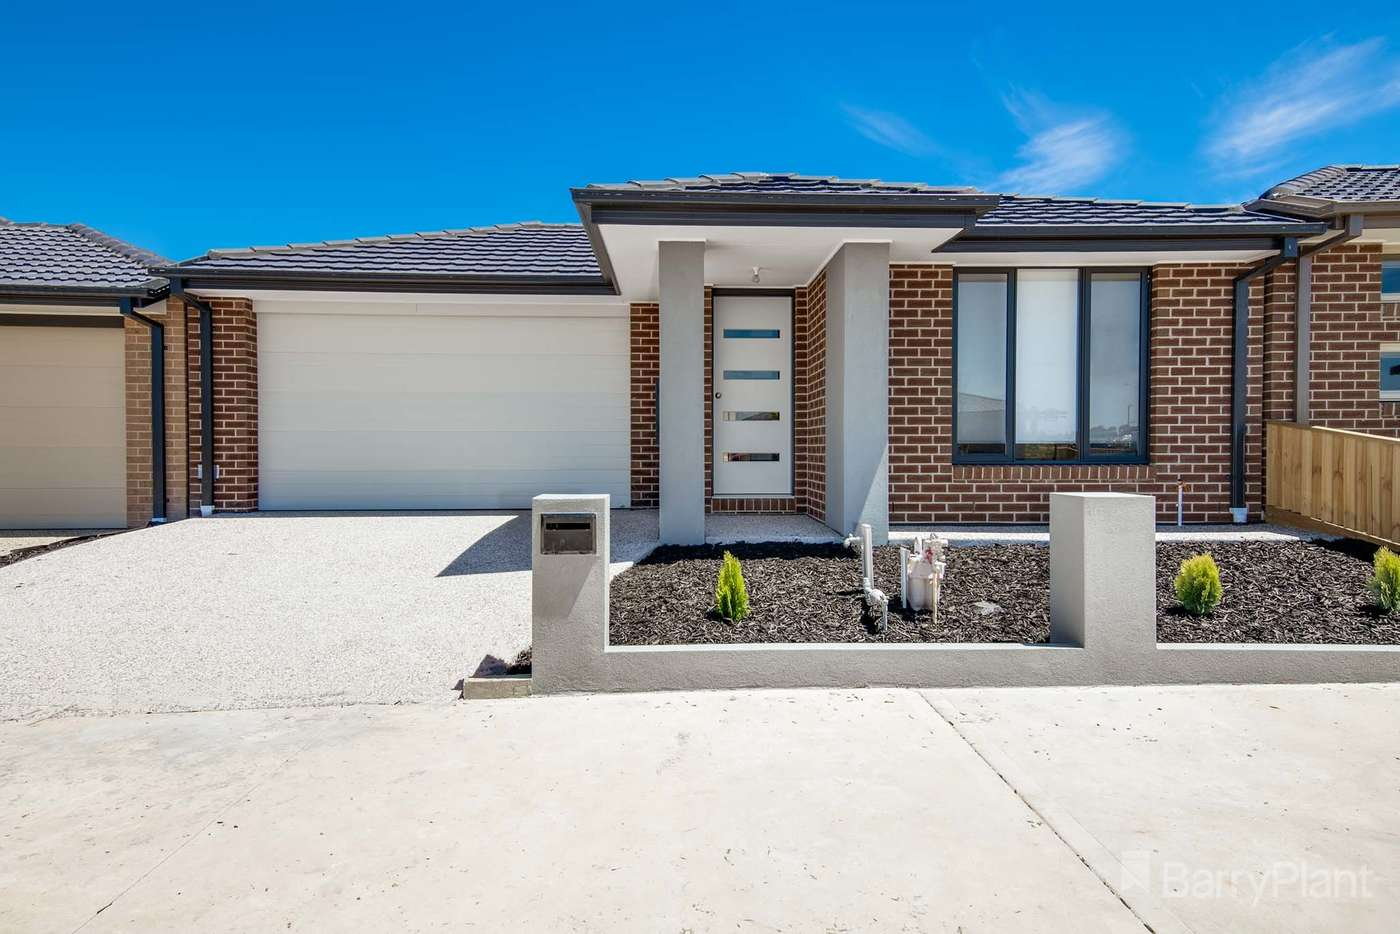 Main view of Homely house listing, 47 Hunt Way, Pakenham VIC 3810